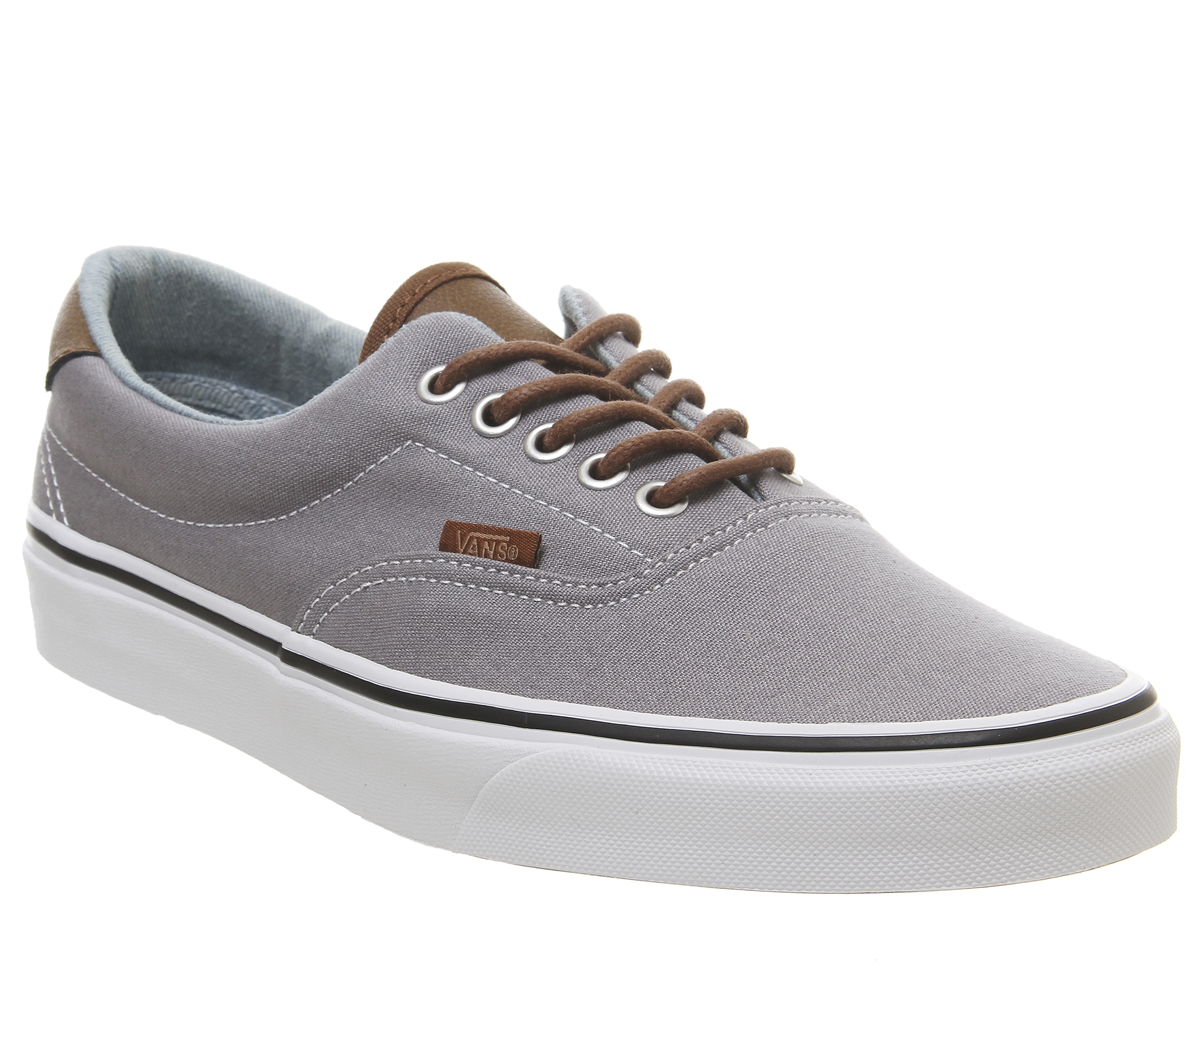 9b8036c0fb791d Sentinel Mens Vans Era 59 Trainers Frost Gray Acid Denim Trainers Shoes